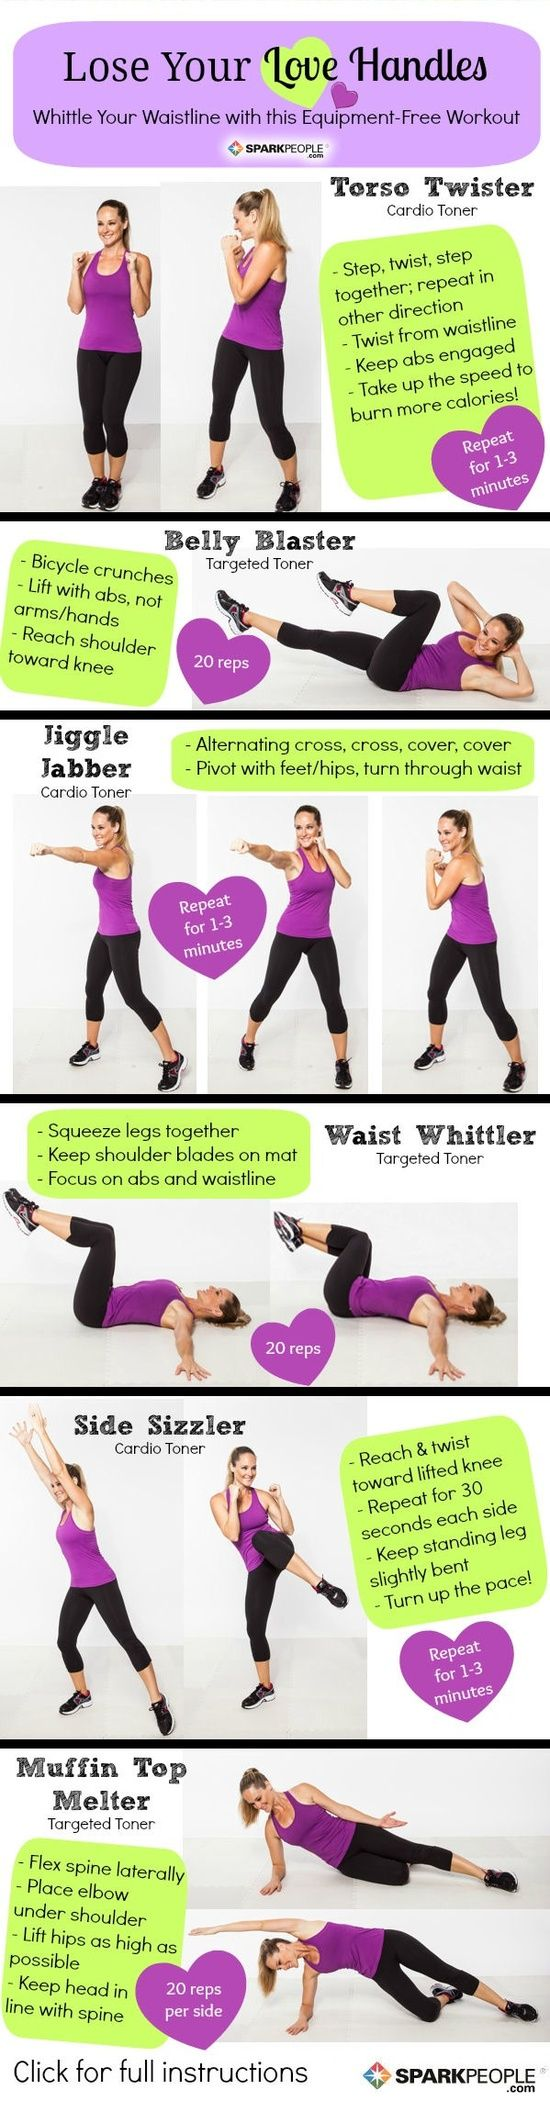 Lose the Love Handles!